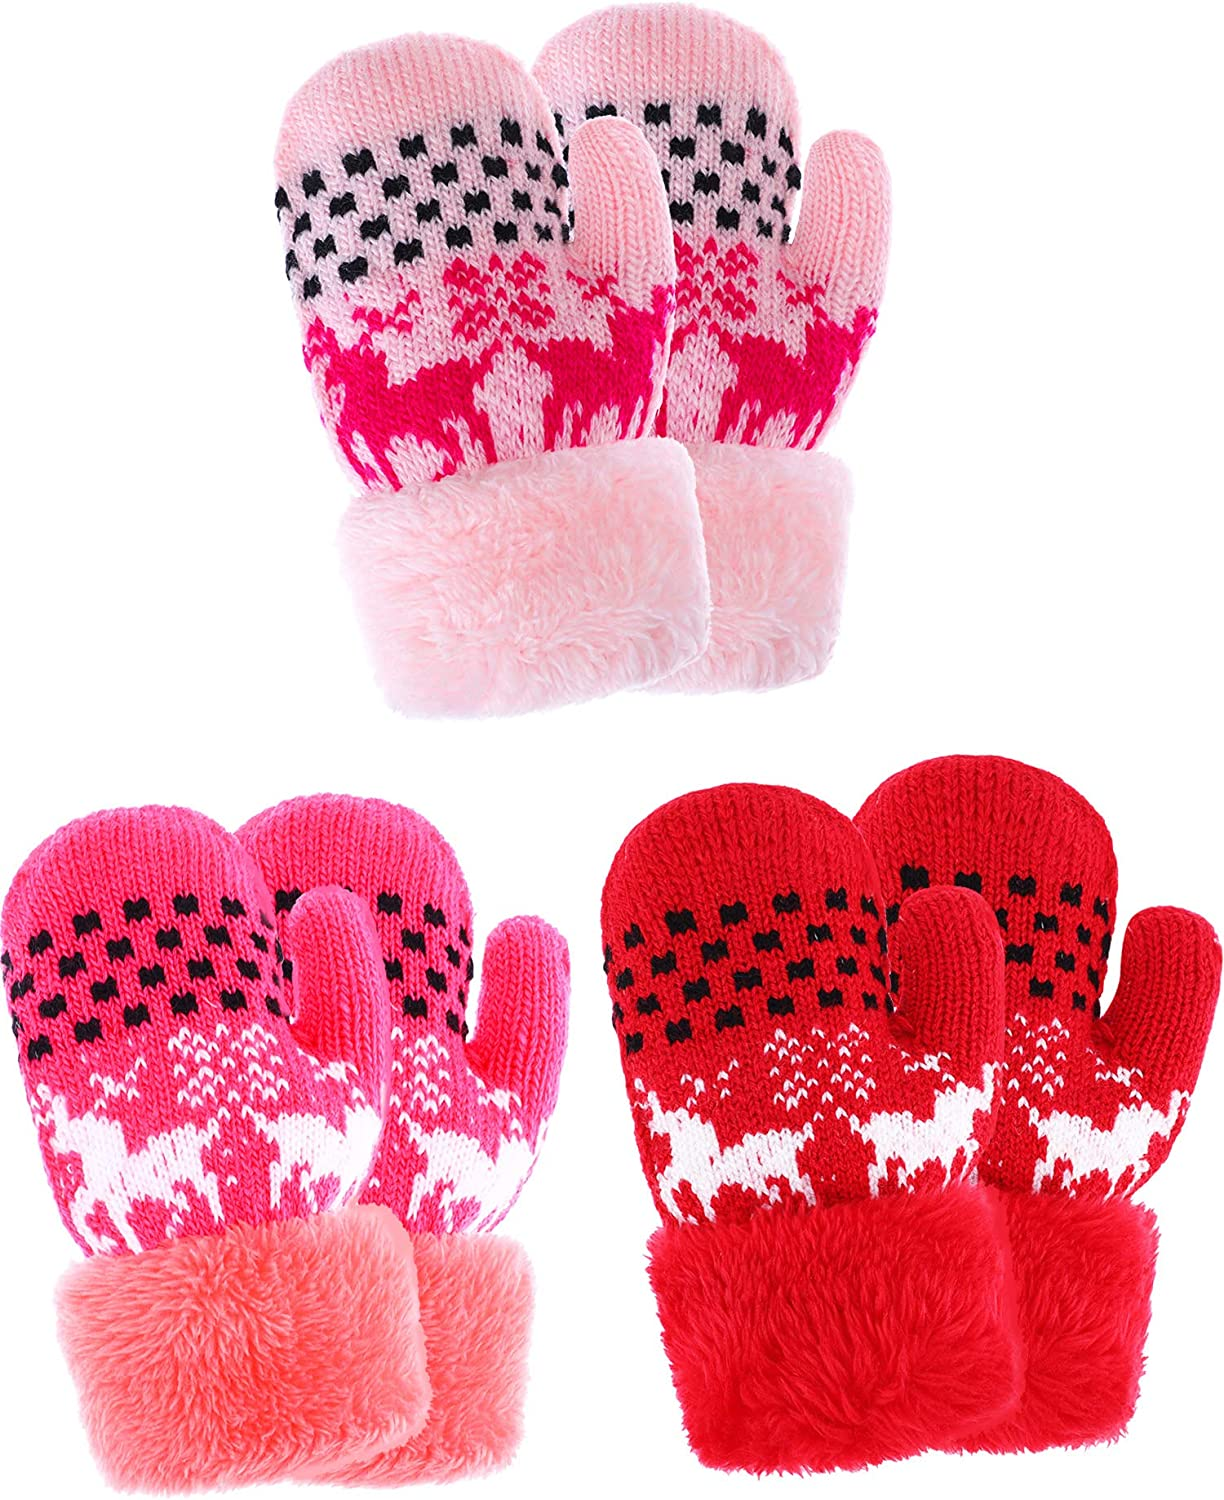 Tatuo 3 Pairs Kids Full Finger Gloves Winter Plush Lined Gloves Knitted Thicken Mittens for Infant Boys Girls Usage Color Set 4